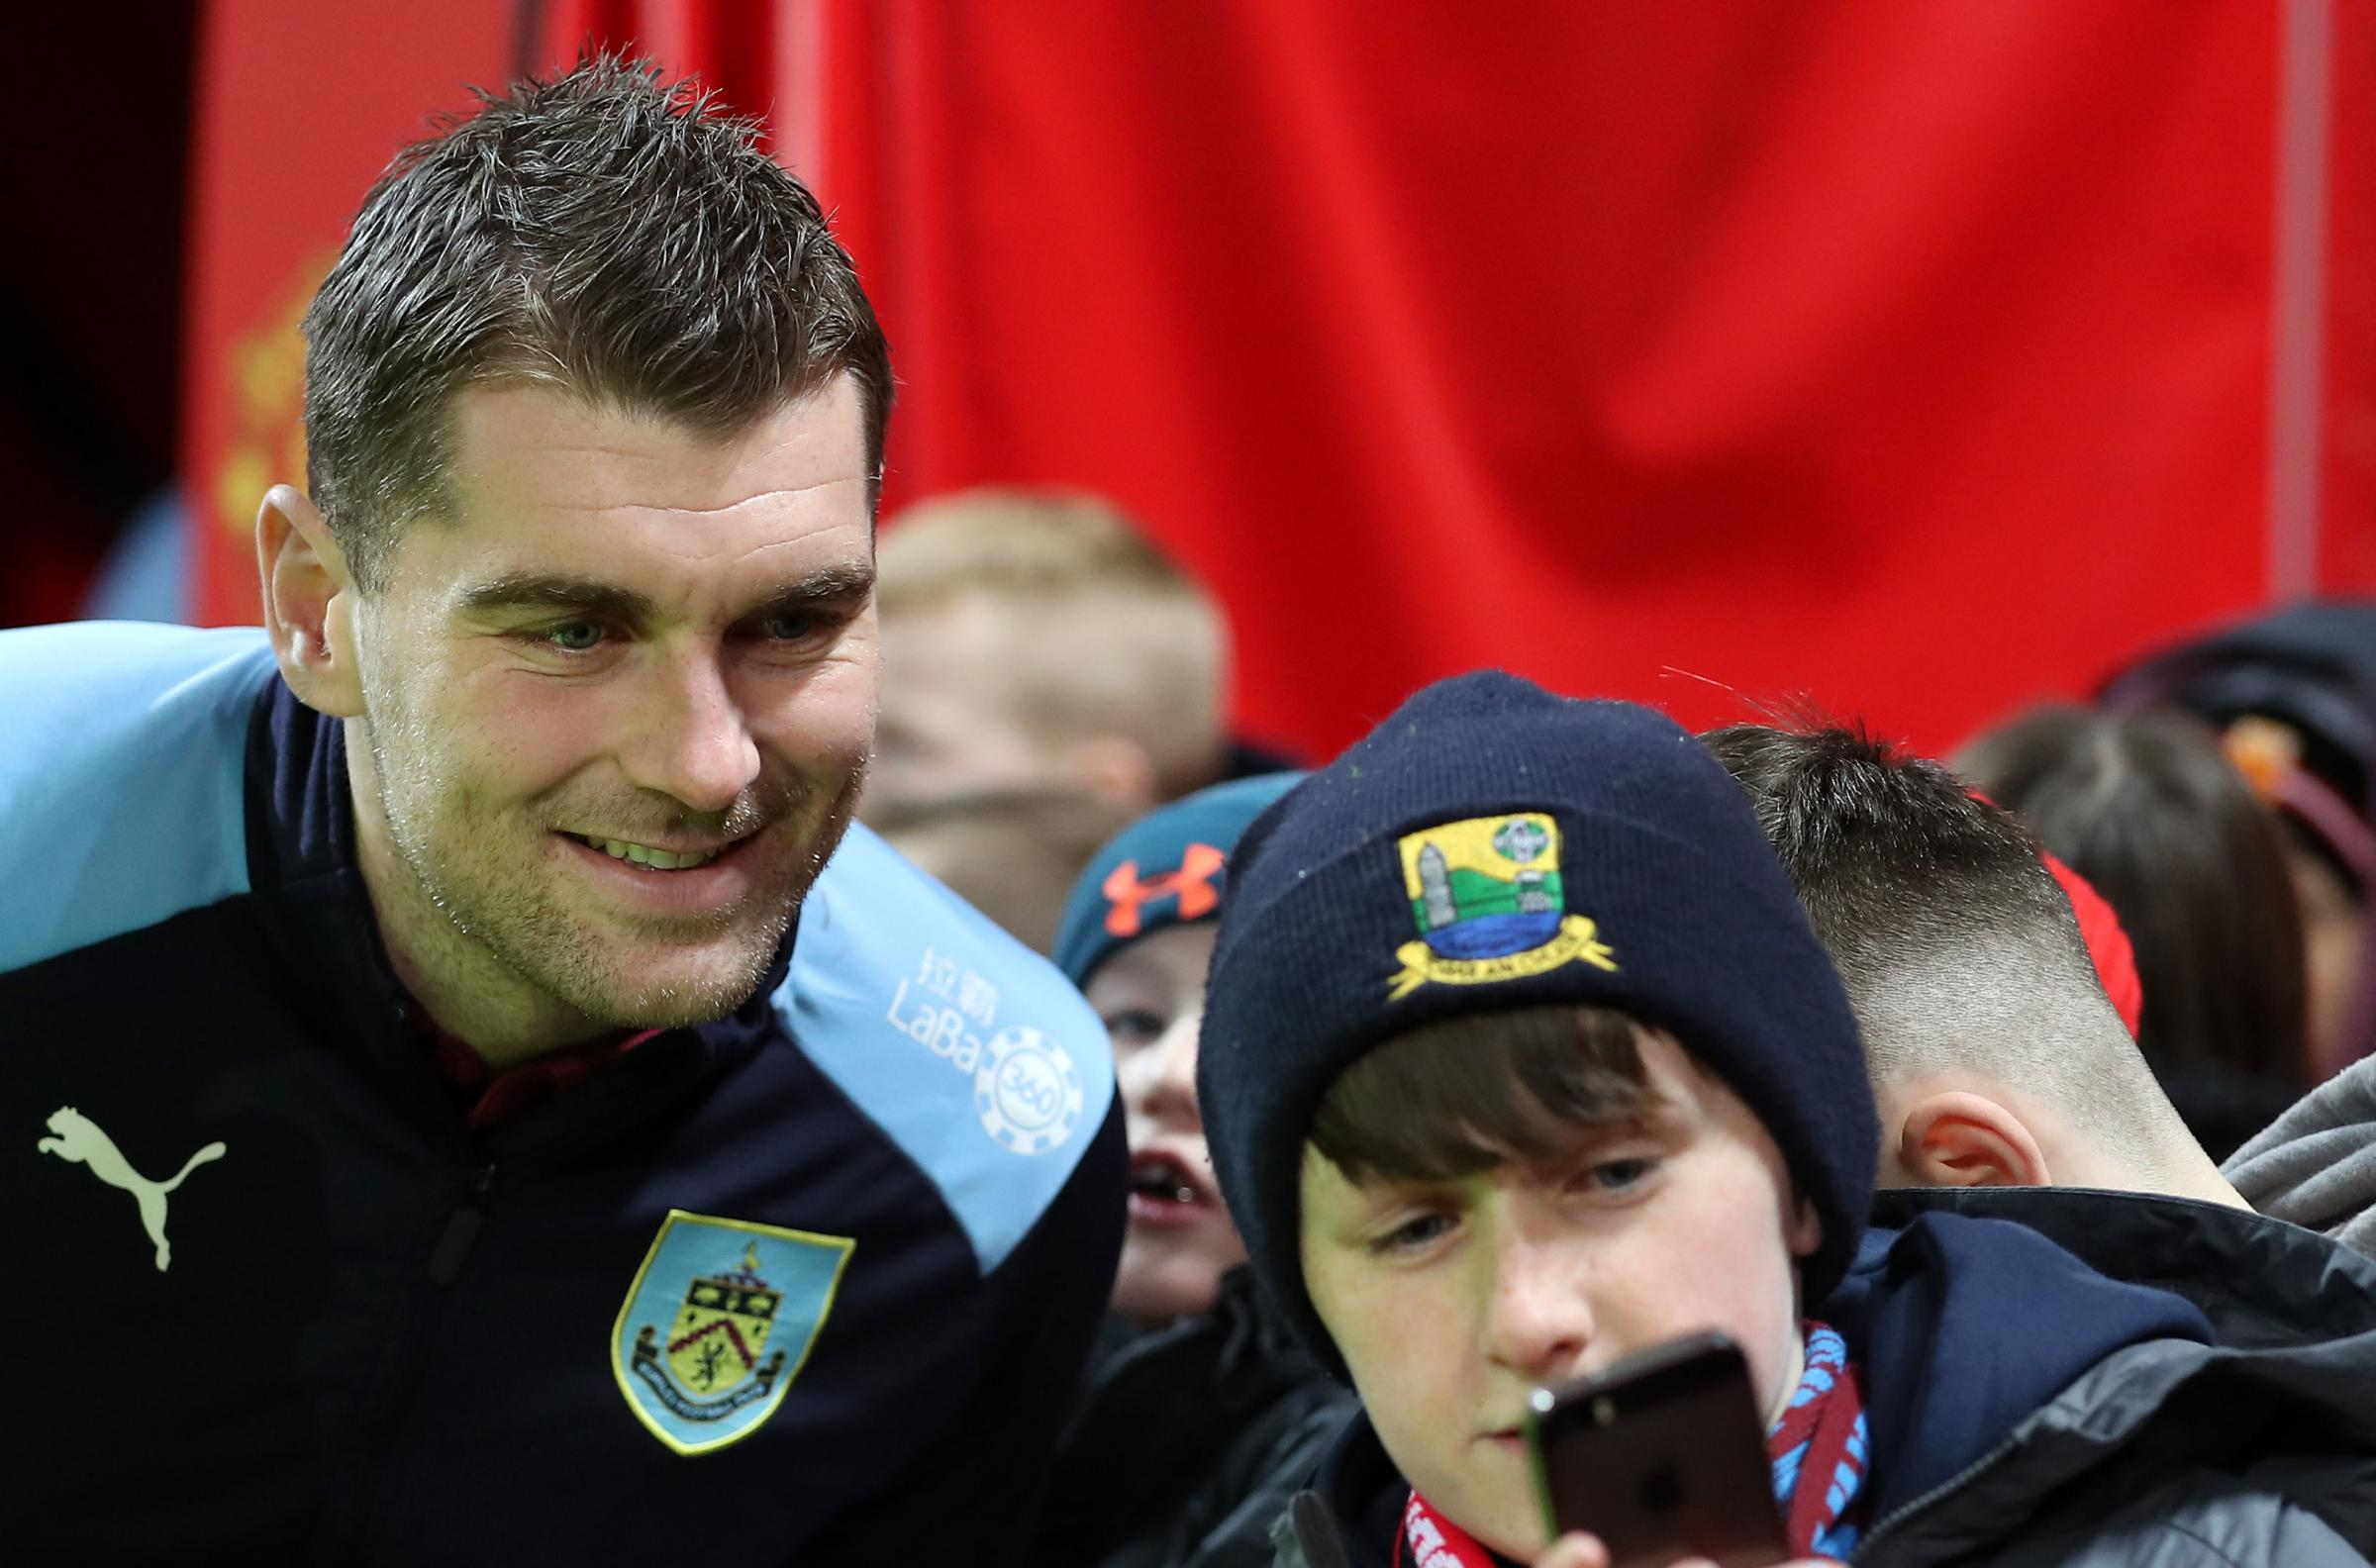 Burnley's Sam Vokes interacts with a fan during the Premier League match at Old Trafford, Manchester. PRESS ASSOCIATION Photo. Picture date: Tuesday January 29, 2019. See PA story SOCCER Man Utd. Photo credit should read: Martin Rickett/PA Wire. RESTR